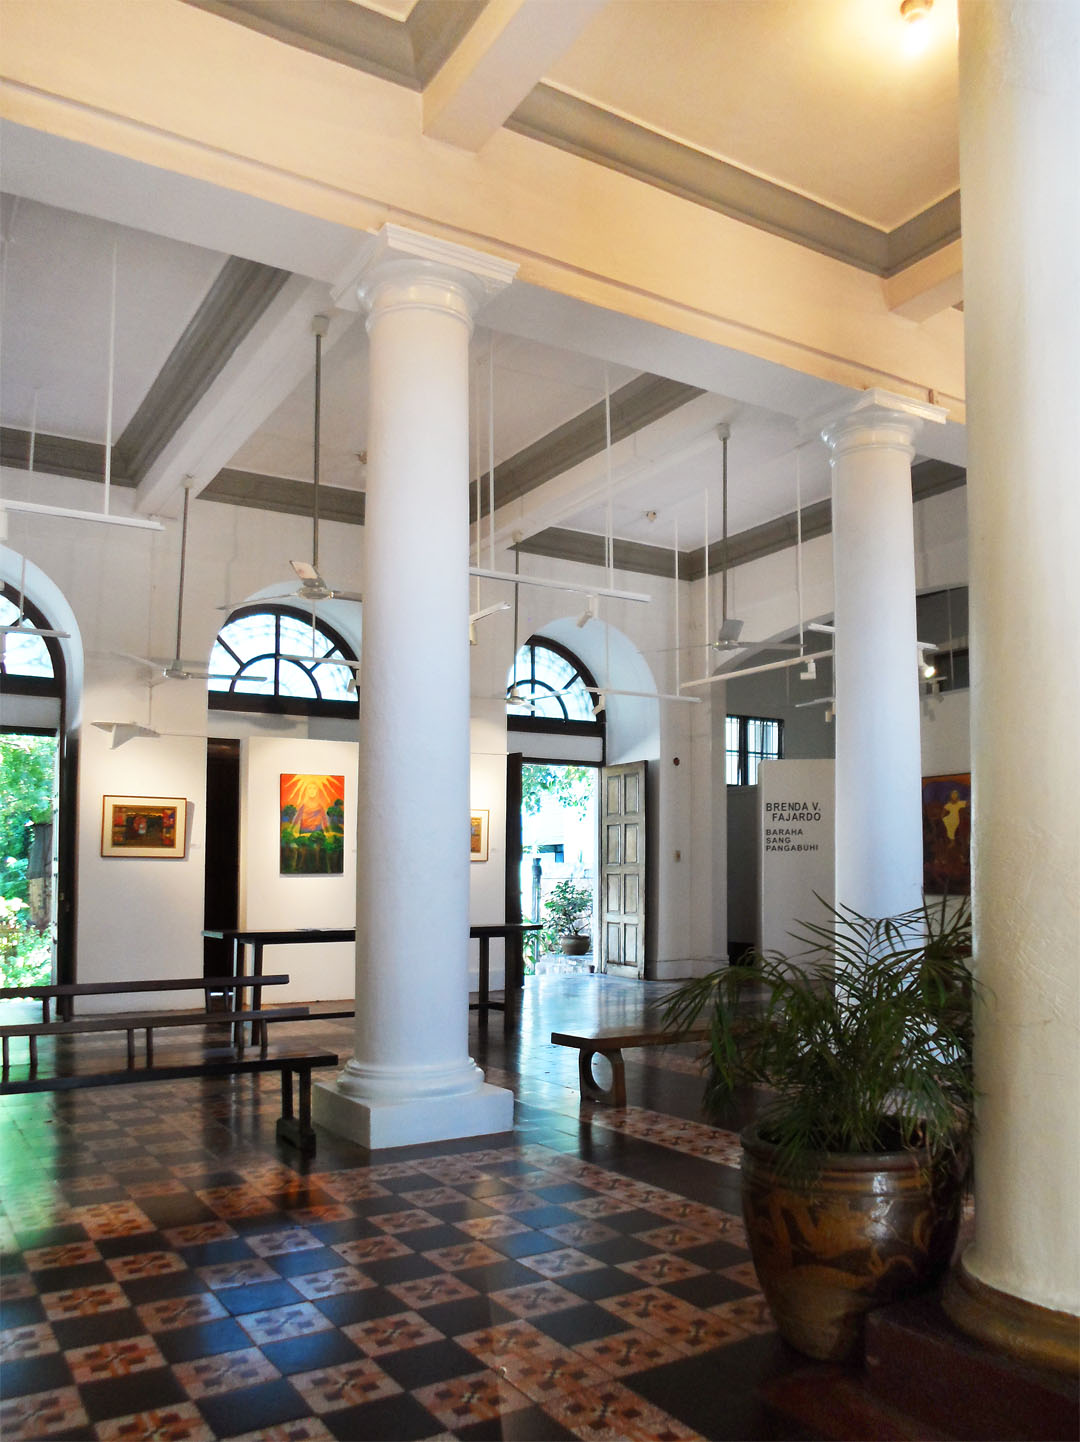 Negros Museum Bacolod, Negros Museum: A Must-Visit Attraction In Bacolod City - turista ...